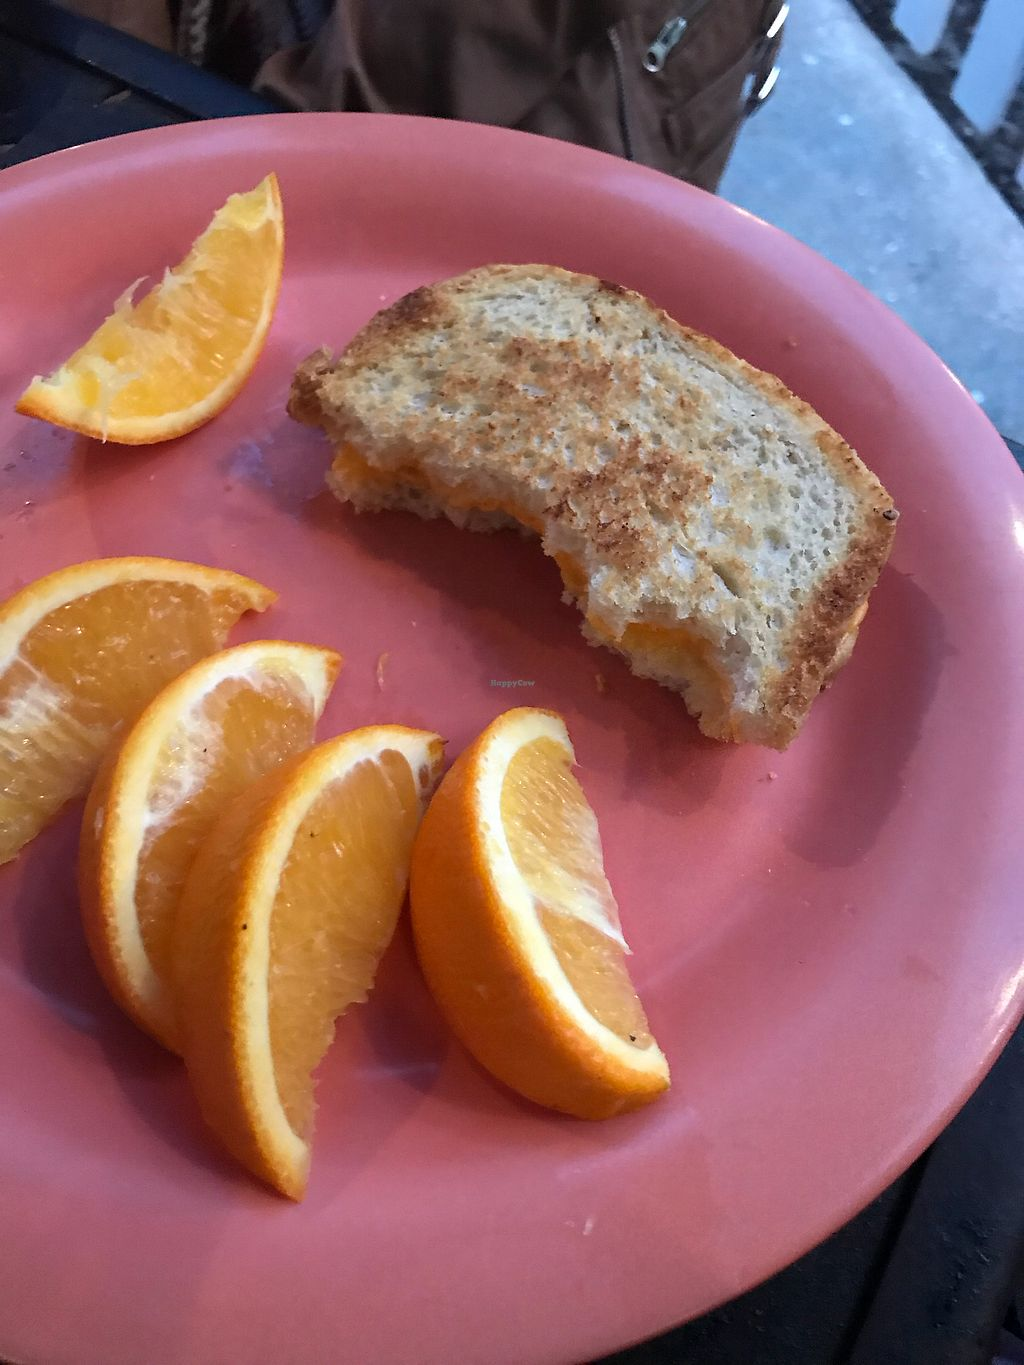 "Photo of Dandelion Communitea Cafe  by <a href=""/members/profile/Alexadhenn"">Alexadhenn</a> <br/>Kids grilled cheese with fruit  <br/> January 8, 2018  - <a href='/contact/abuse/image/6979/344517'>Report</a>"